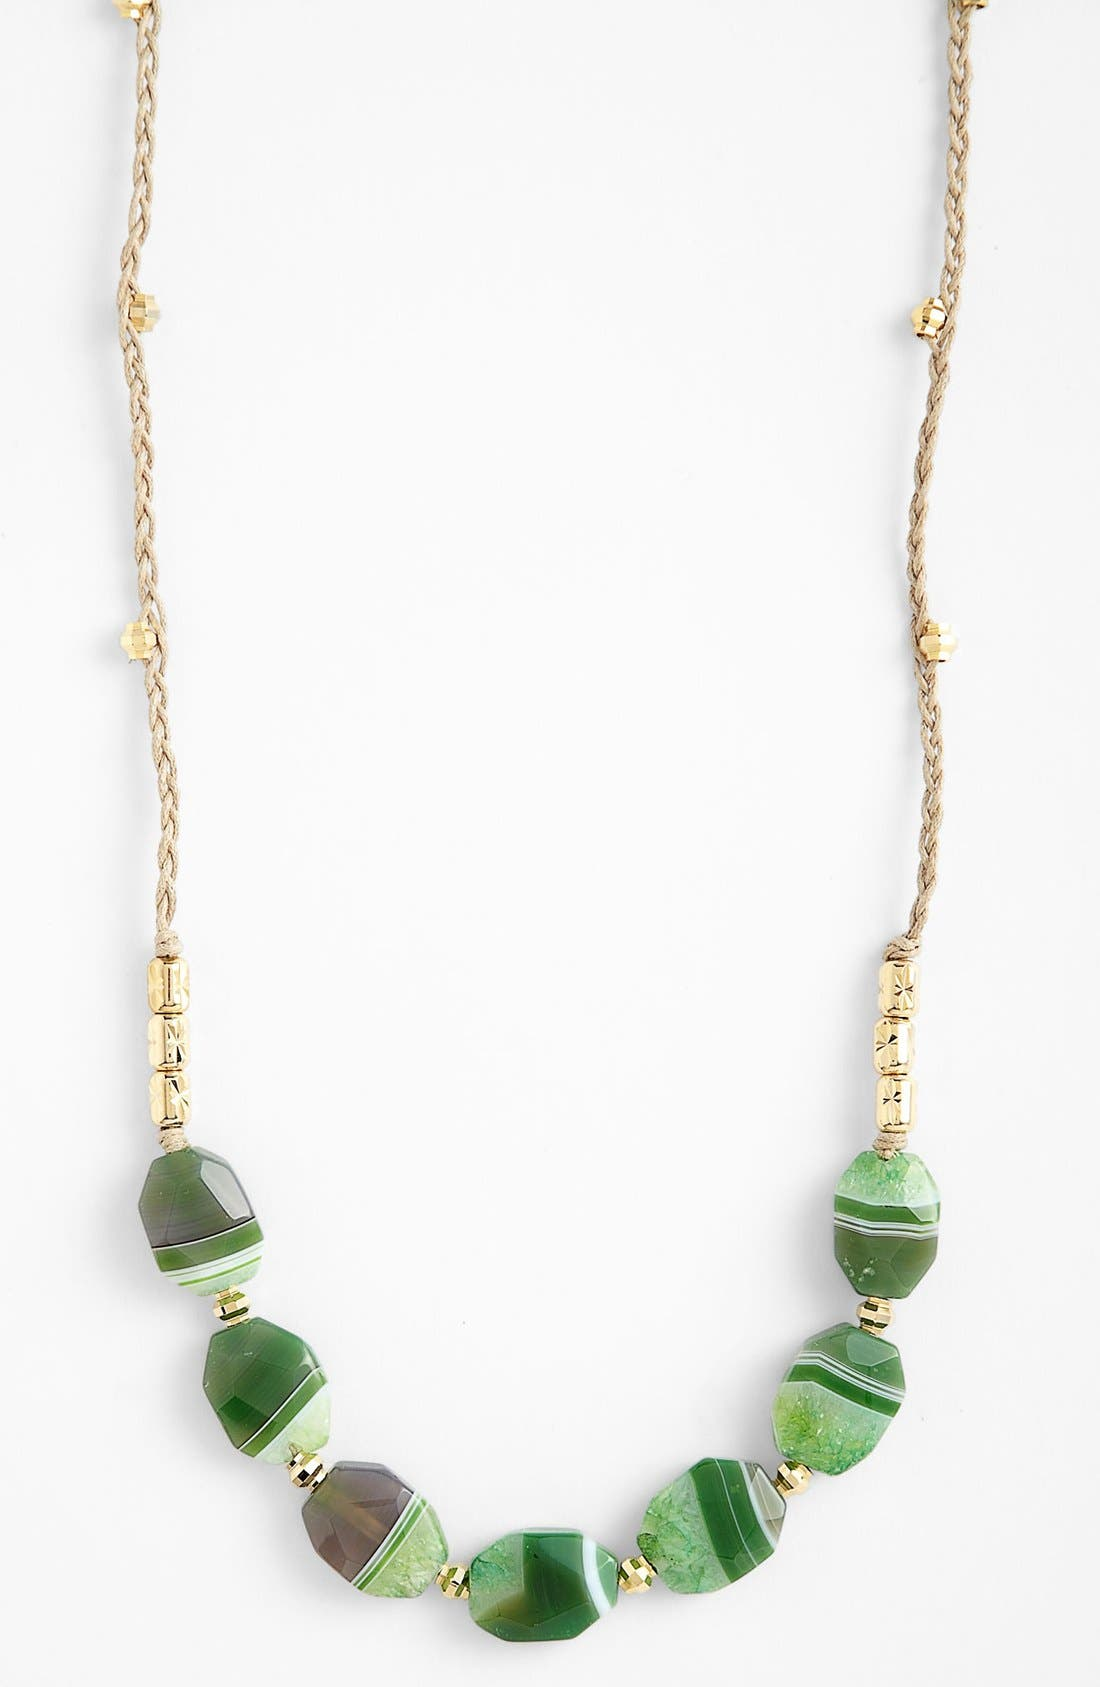 Alternate Image 1 Selected - Nordstrom 'Grotto' Long Frontal Necklace